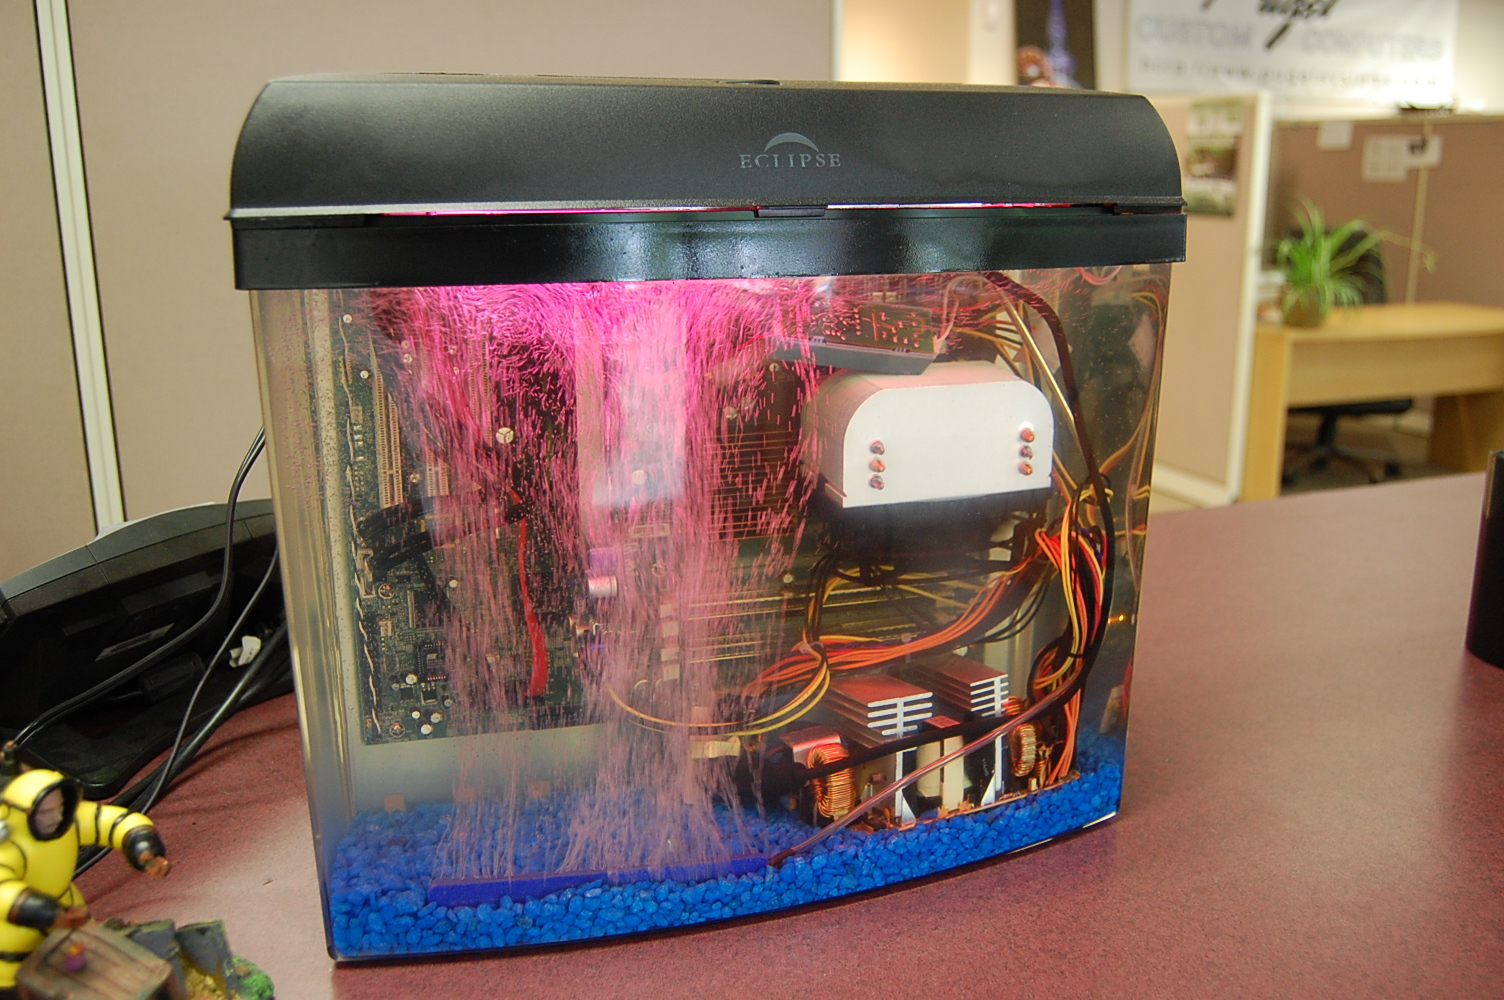 Fish tank PC With Bubles.